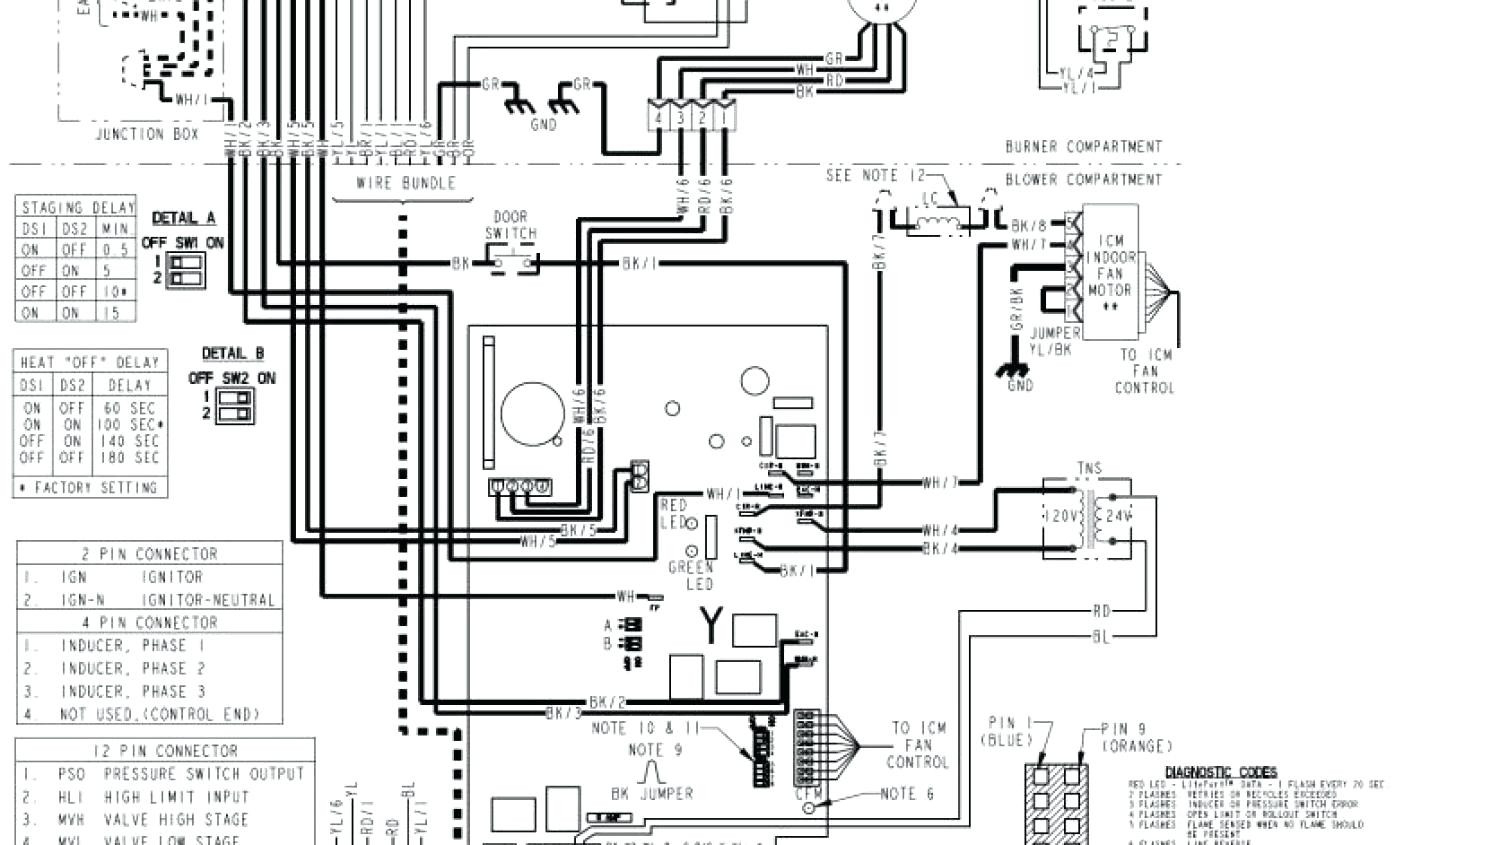 Enjoyable Urgg Rheem Wiring Diagrams Wiring Diagram Rheem Heat Pump Wiring Wiring Digital Resources Counpmognl